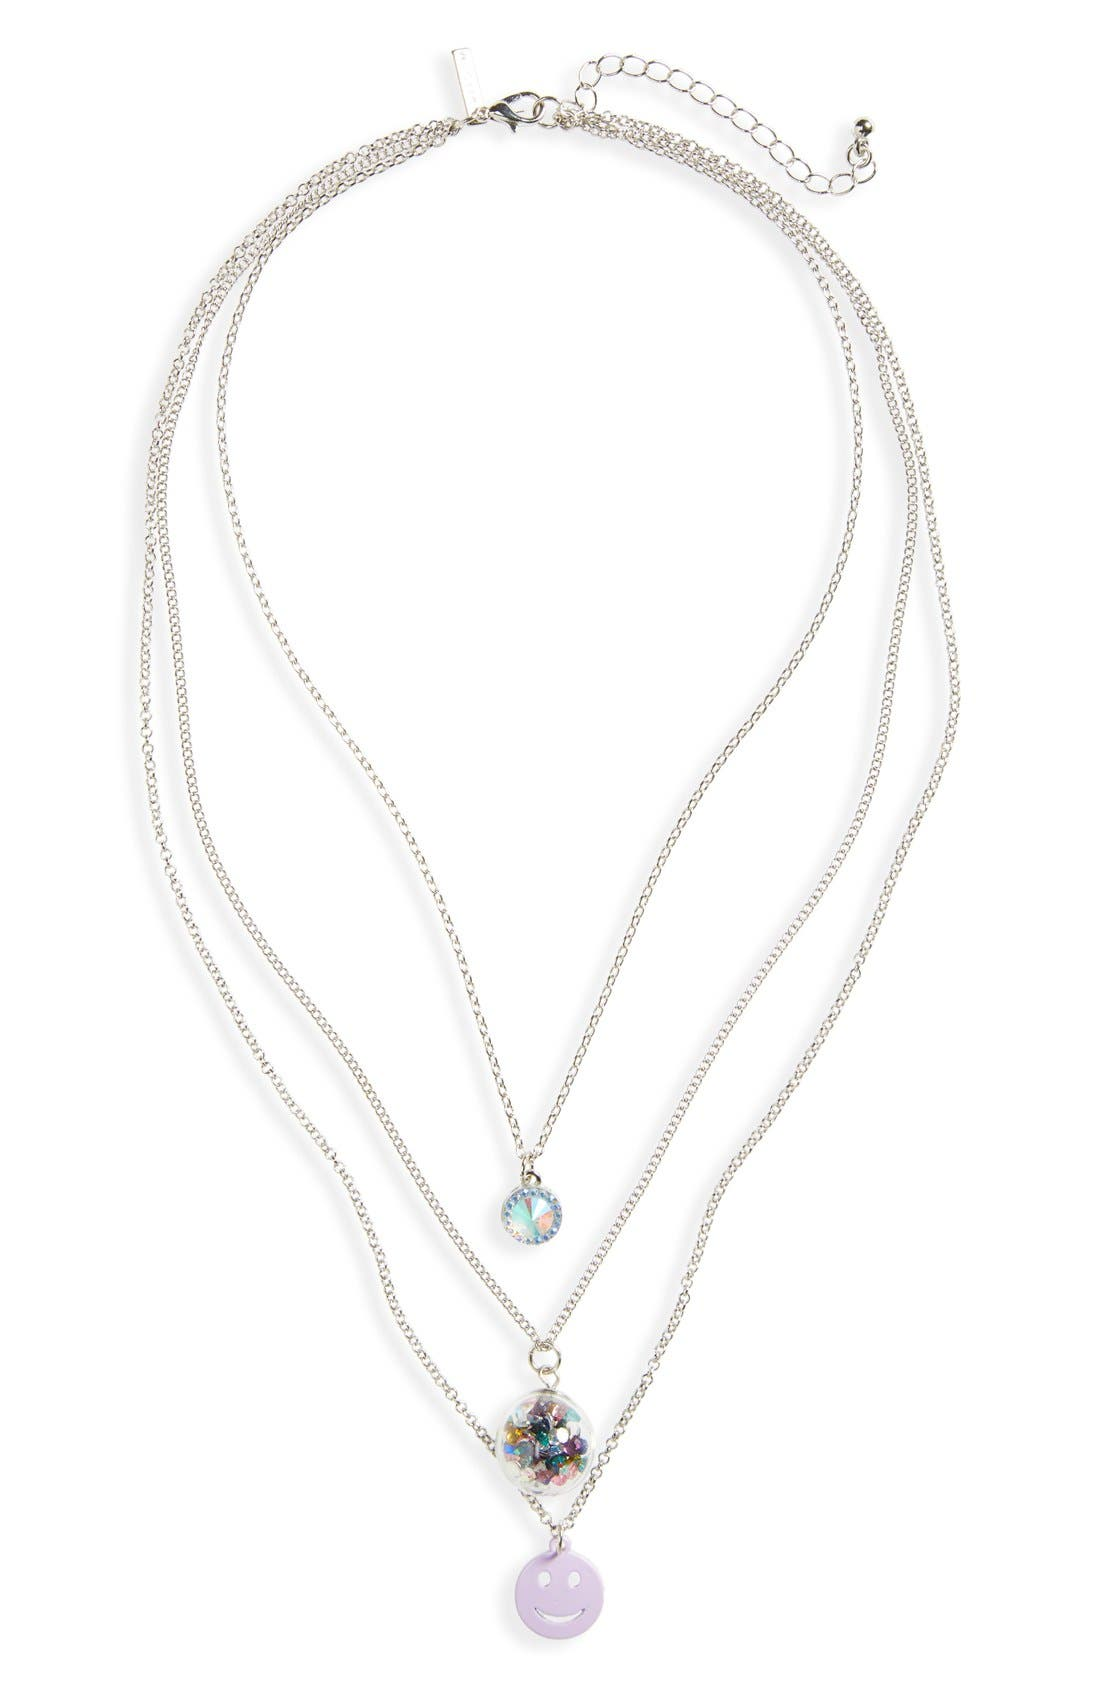 Main Image - Topshop Crystal Smiley Face Layer Necklace